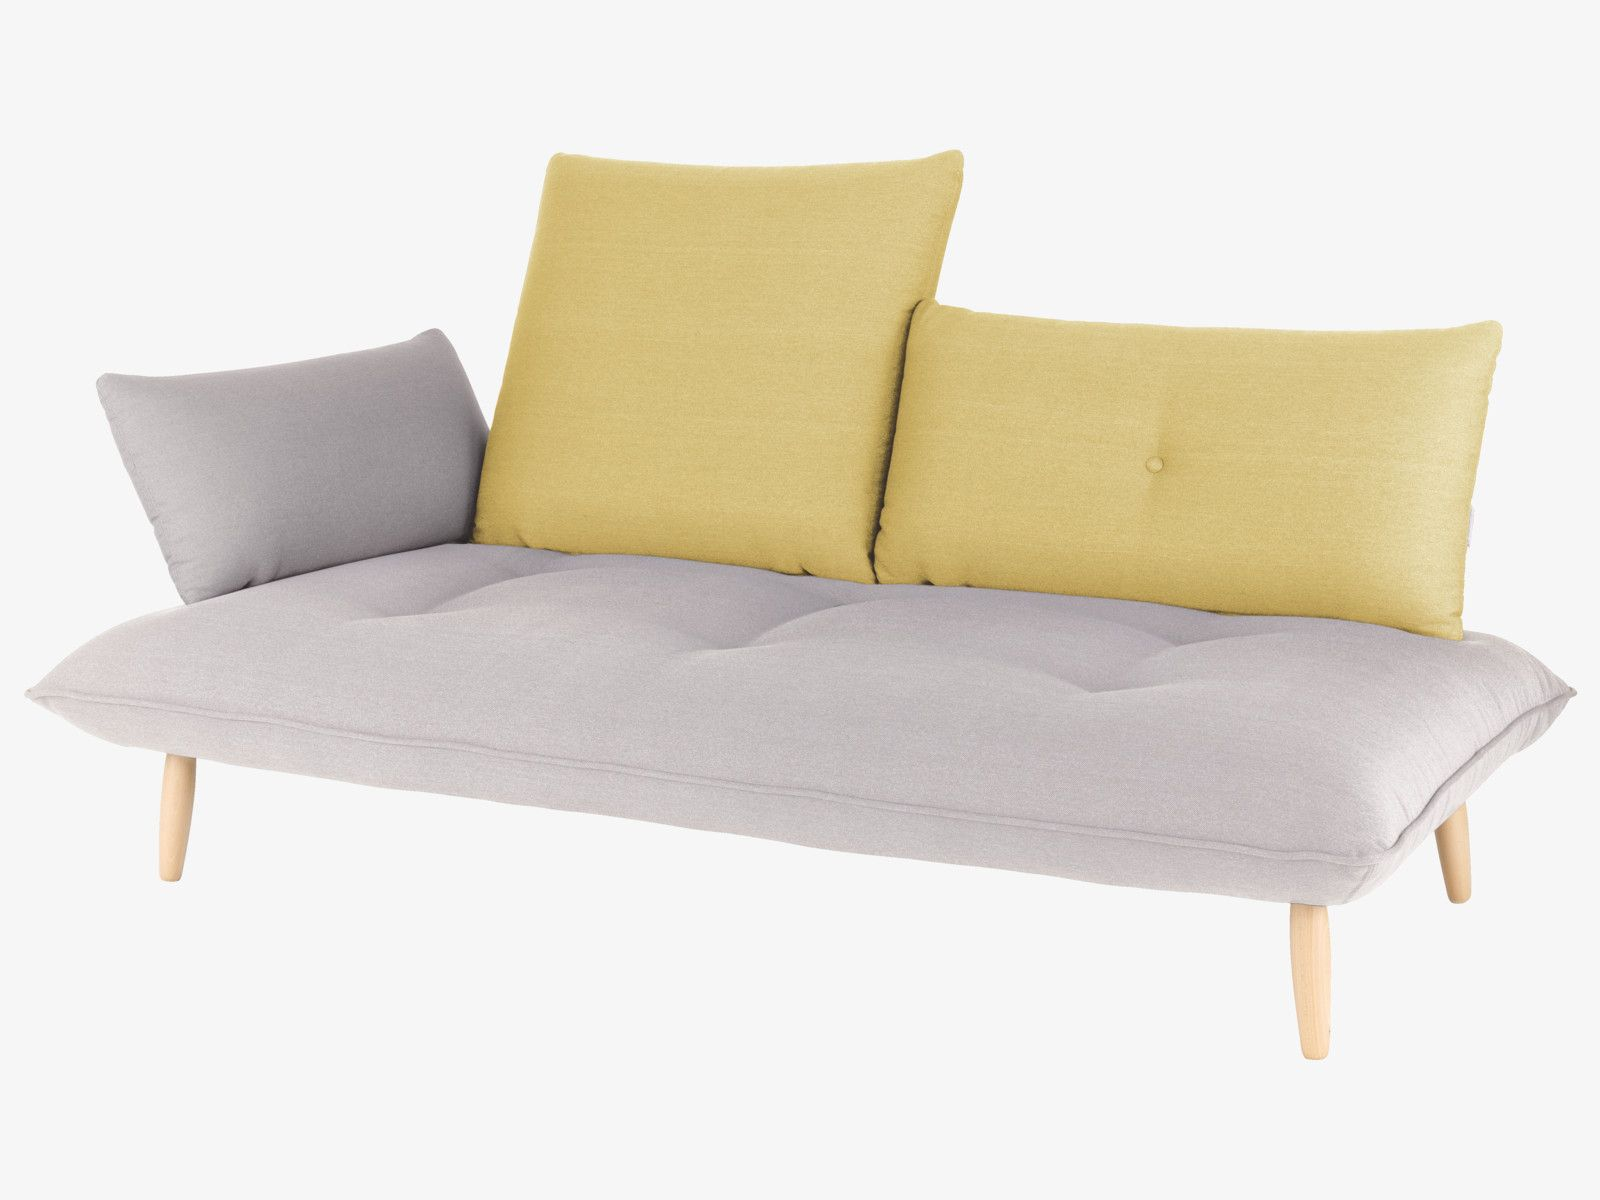 The Naoko Grey And Yellow Left Arm 3 Seater Sofa Is A Unique Design That  Encourages Complete Relaxation And Comfort. Buy Now At Habitat UK. Good Ideas